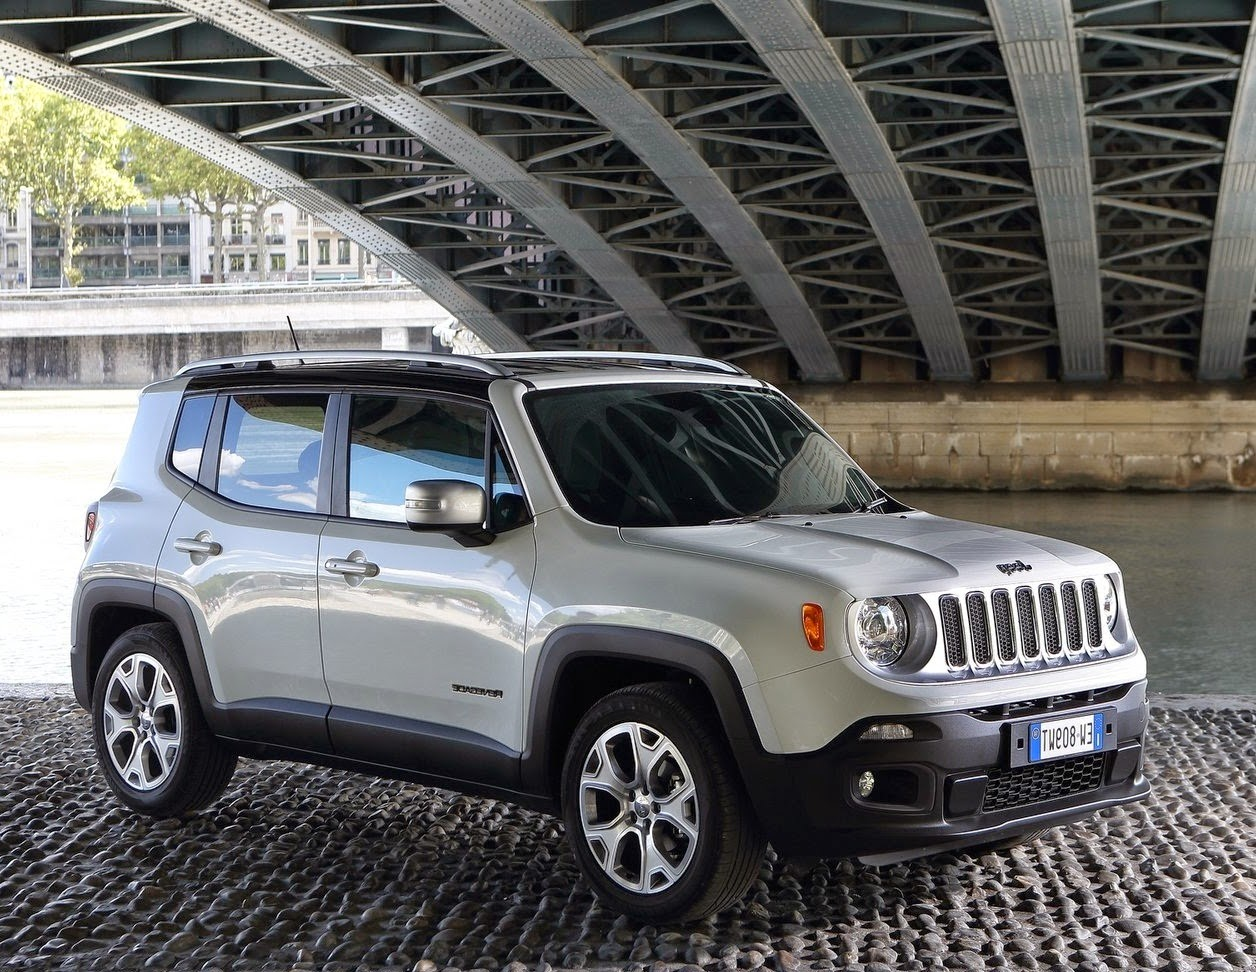 jeep renegade 2015 small compact suv car reviews new car pictures for 2018 2019. Black Bedroom Furniture Sets. Home Design Ideas